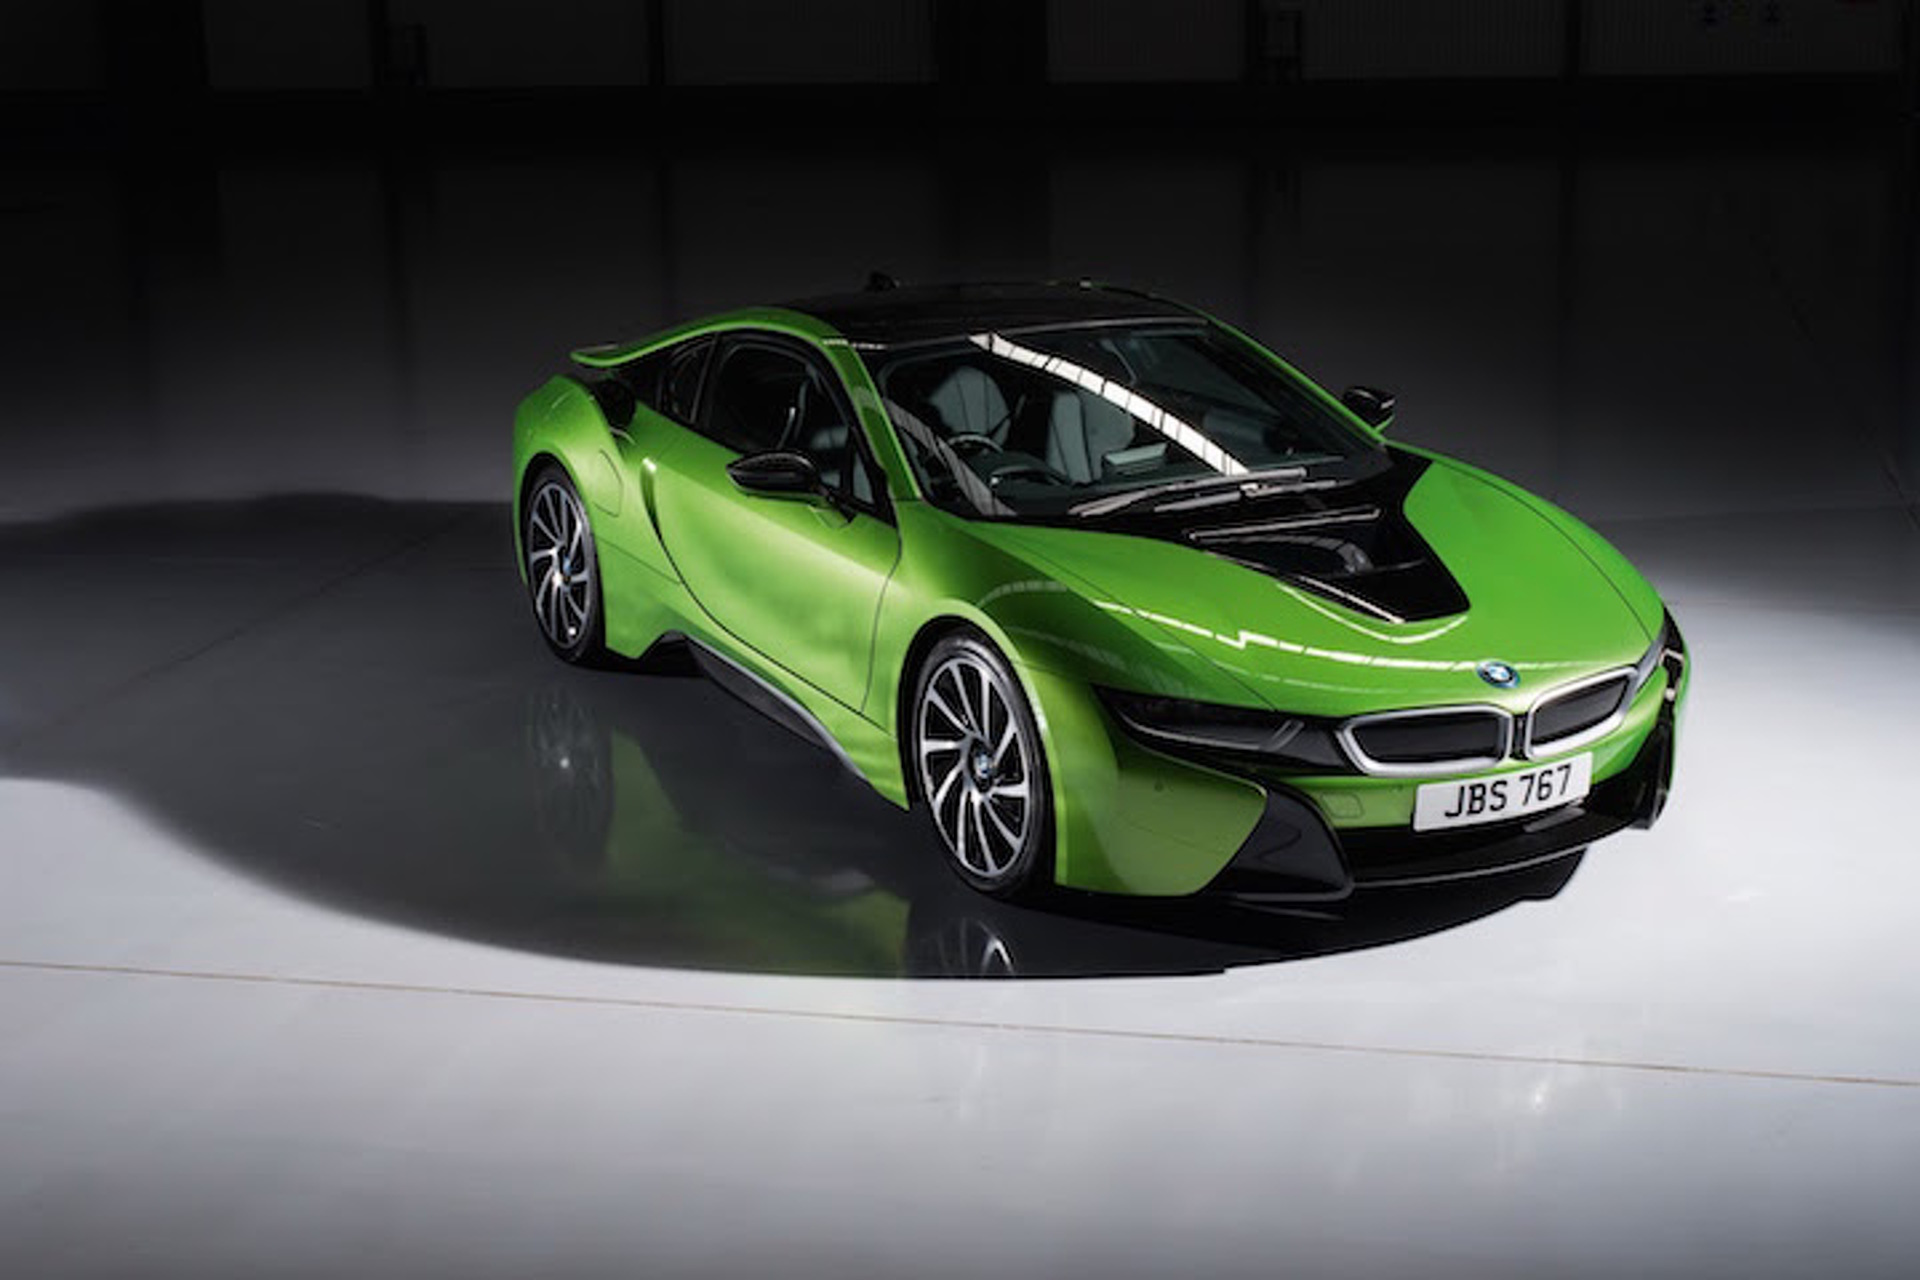 Drive The Rainbow With New Bmw I8 Colors Purple Yellow And Green